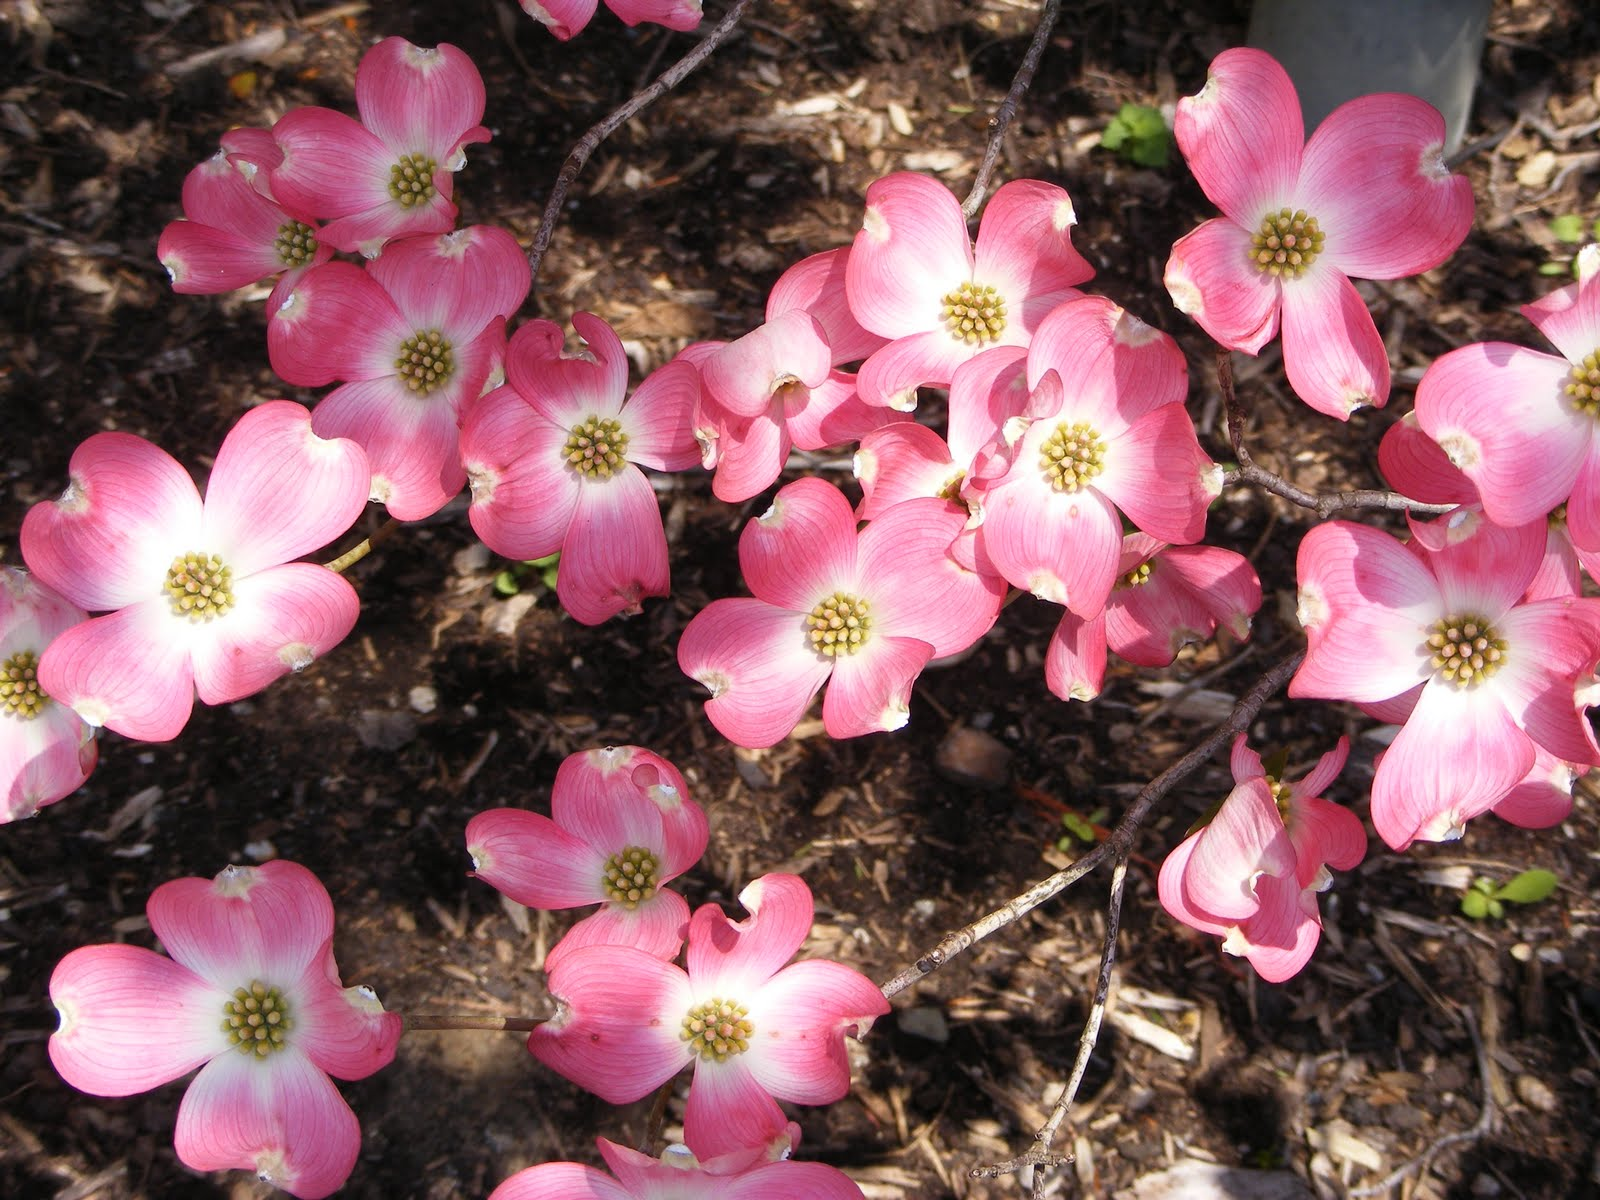 Dogwood Blooms Wallpaper DH wallpapers - Dogwood Blooms Wallpaper